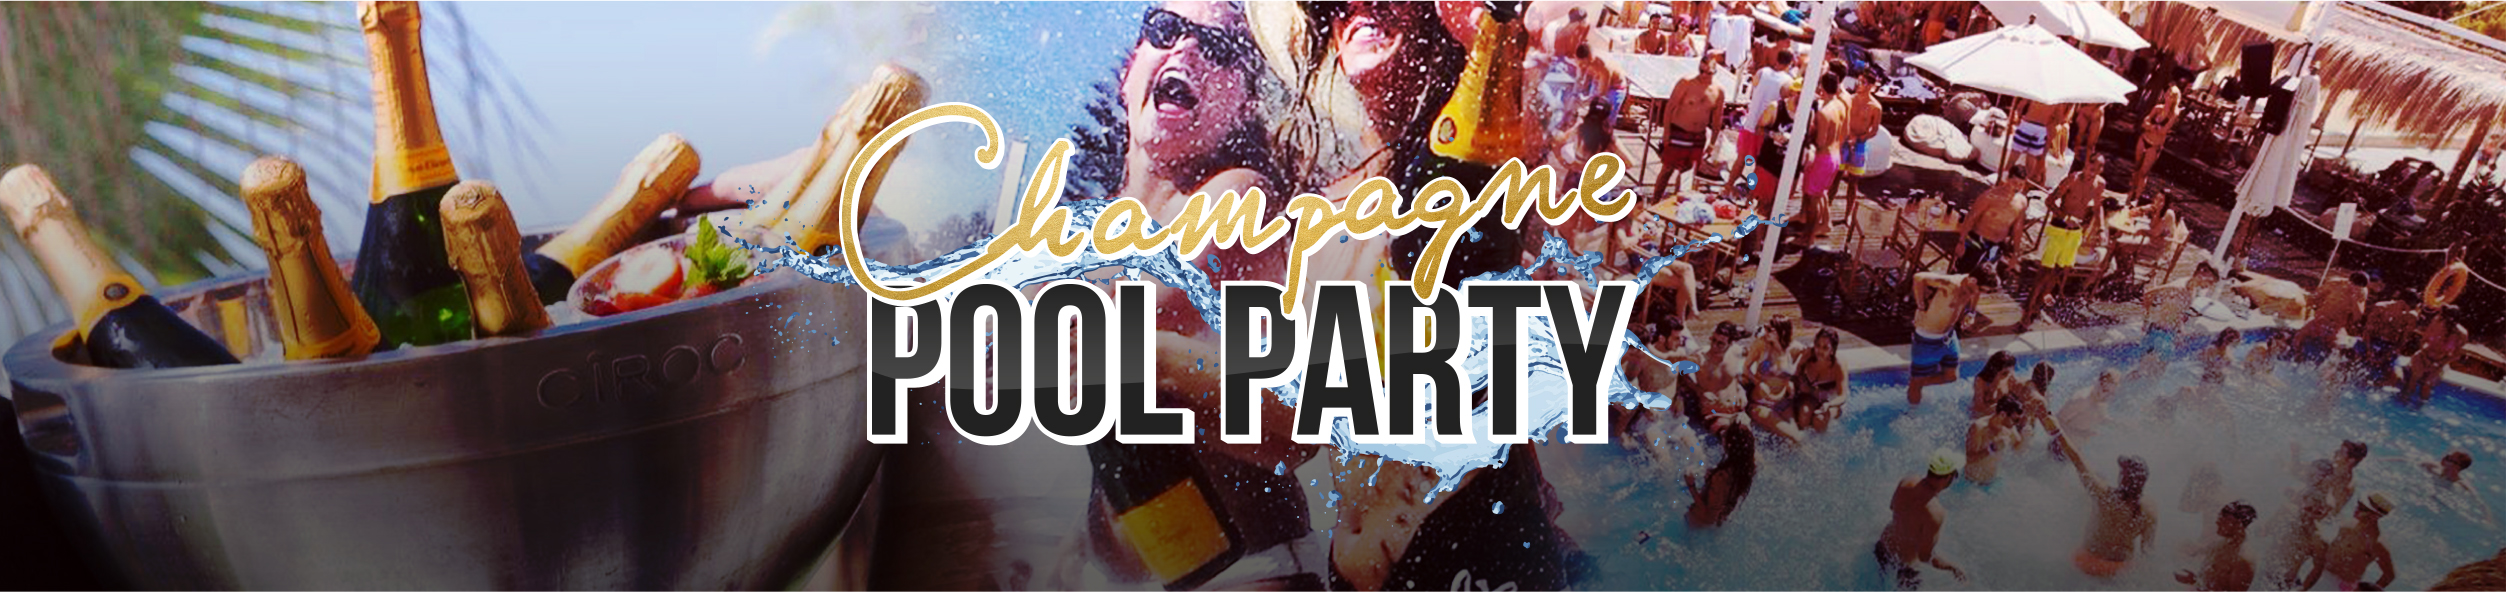 Pool Party Events